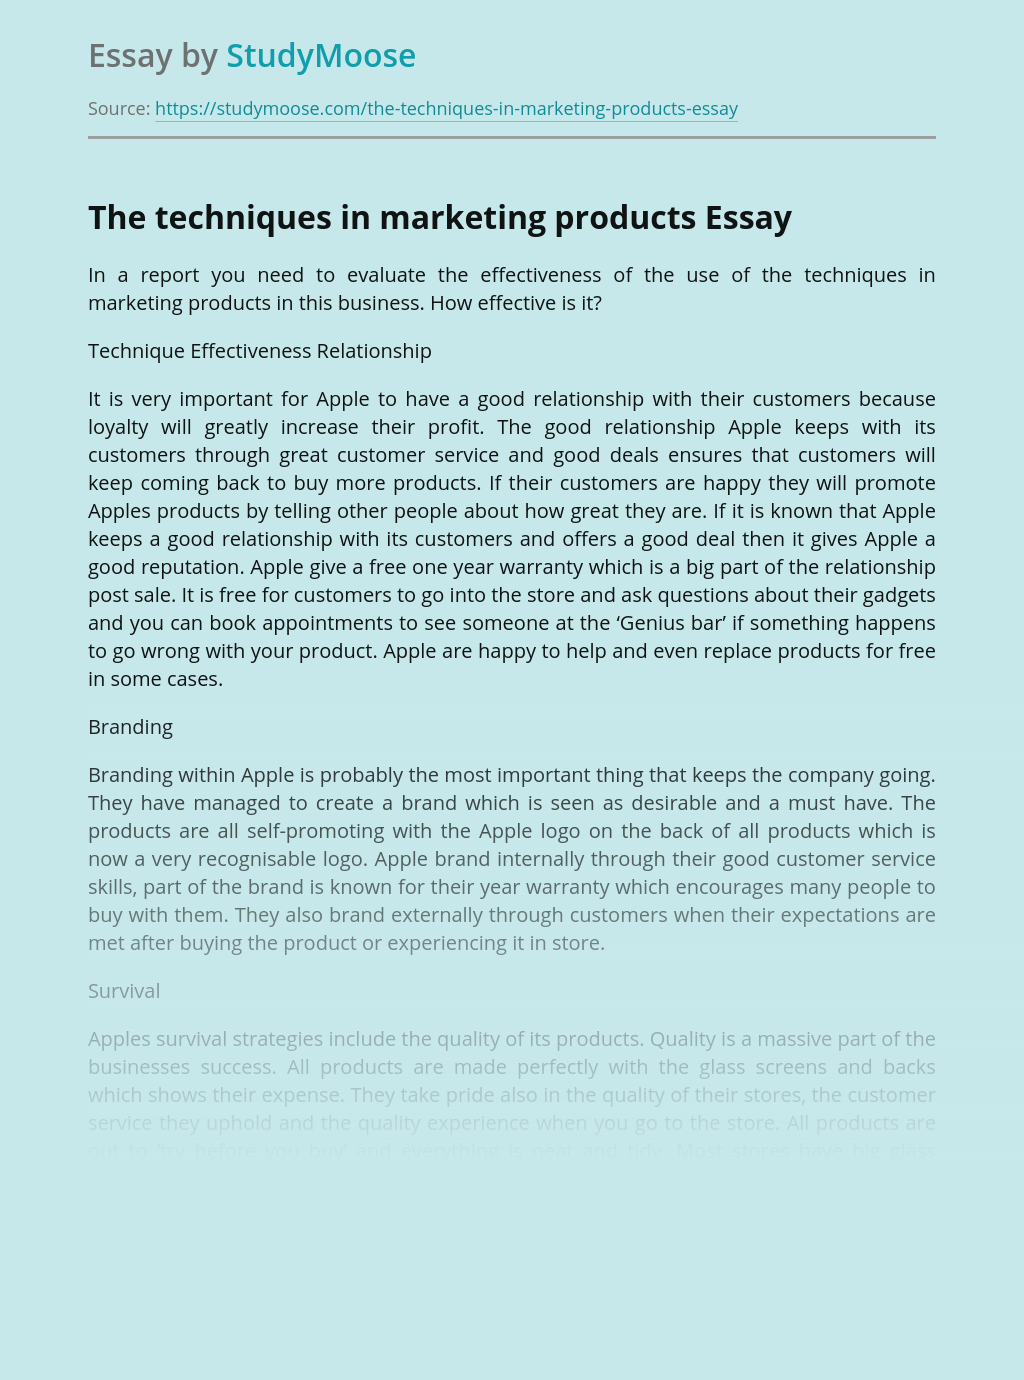 The techniques in marketing products